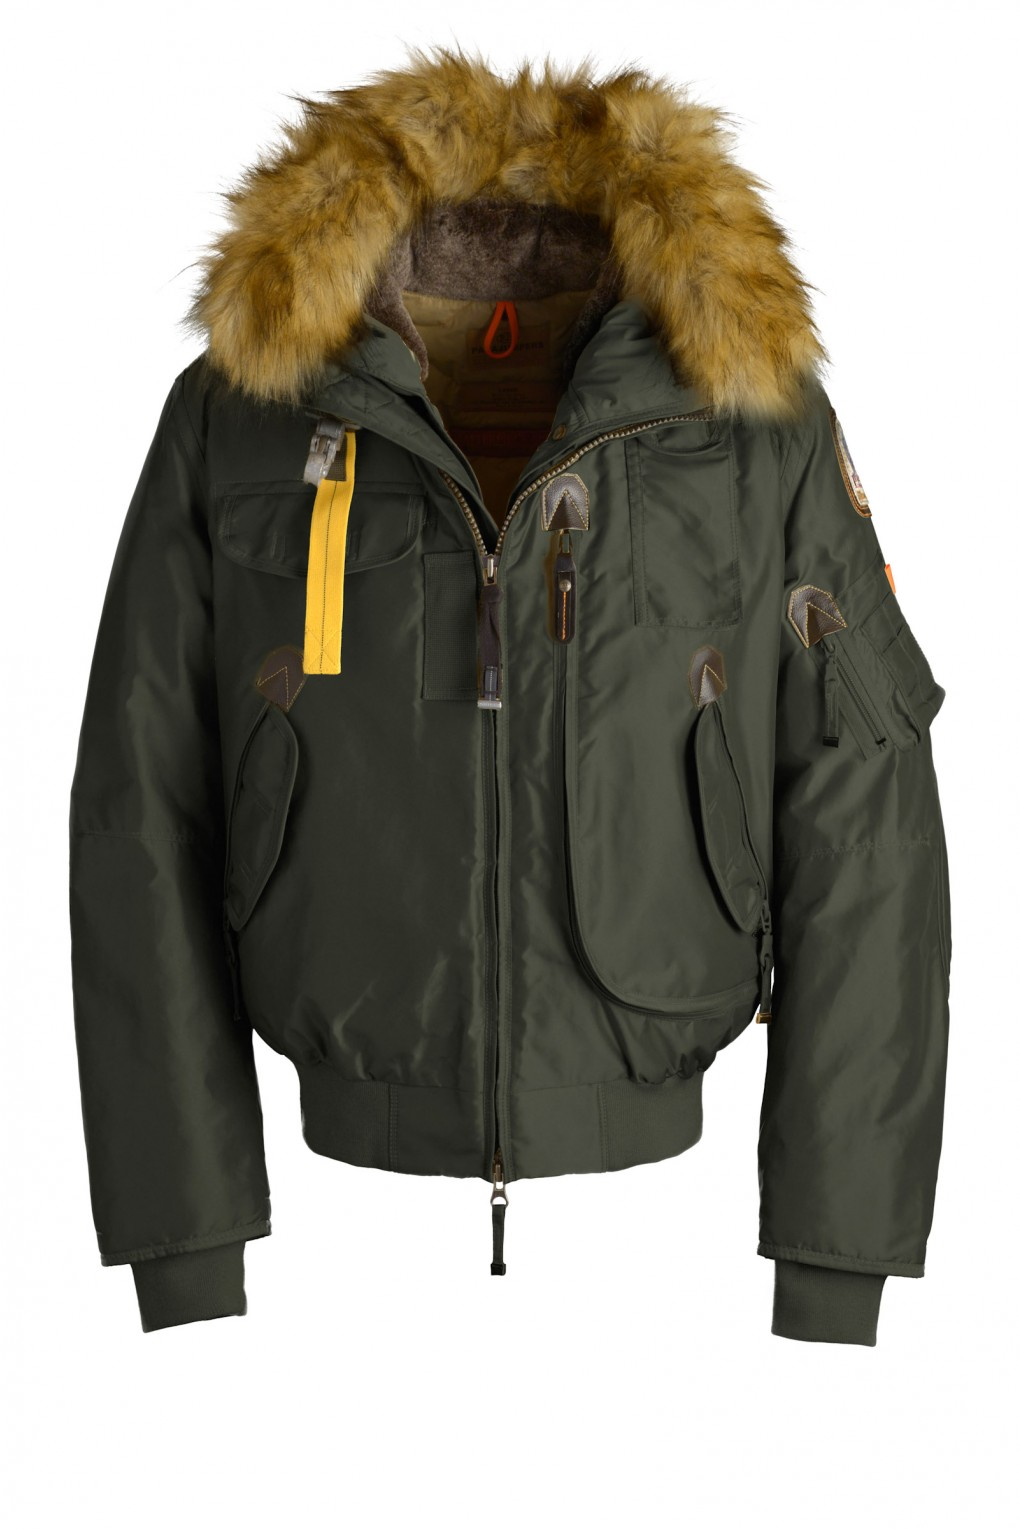 parajumpers GOBI ECO man outerwear Olive